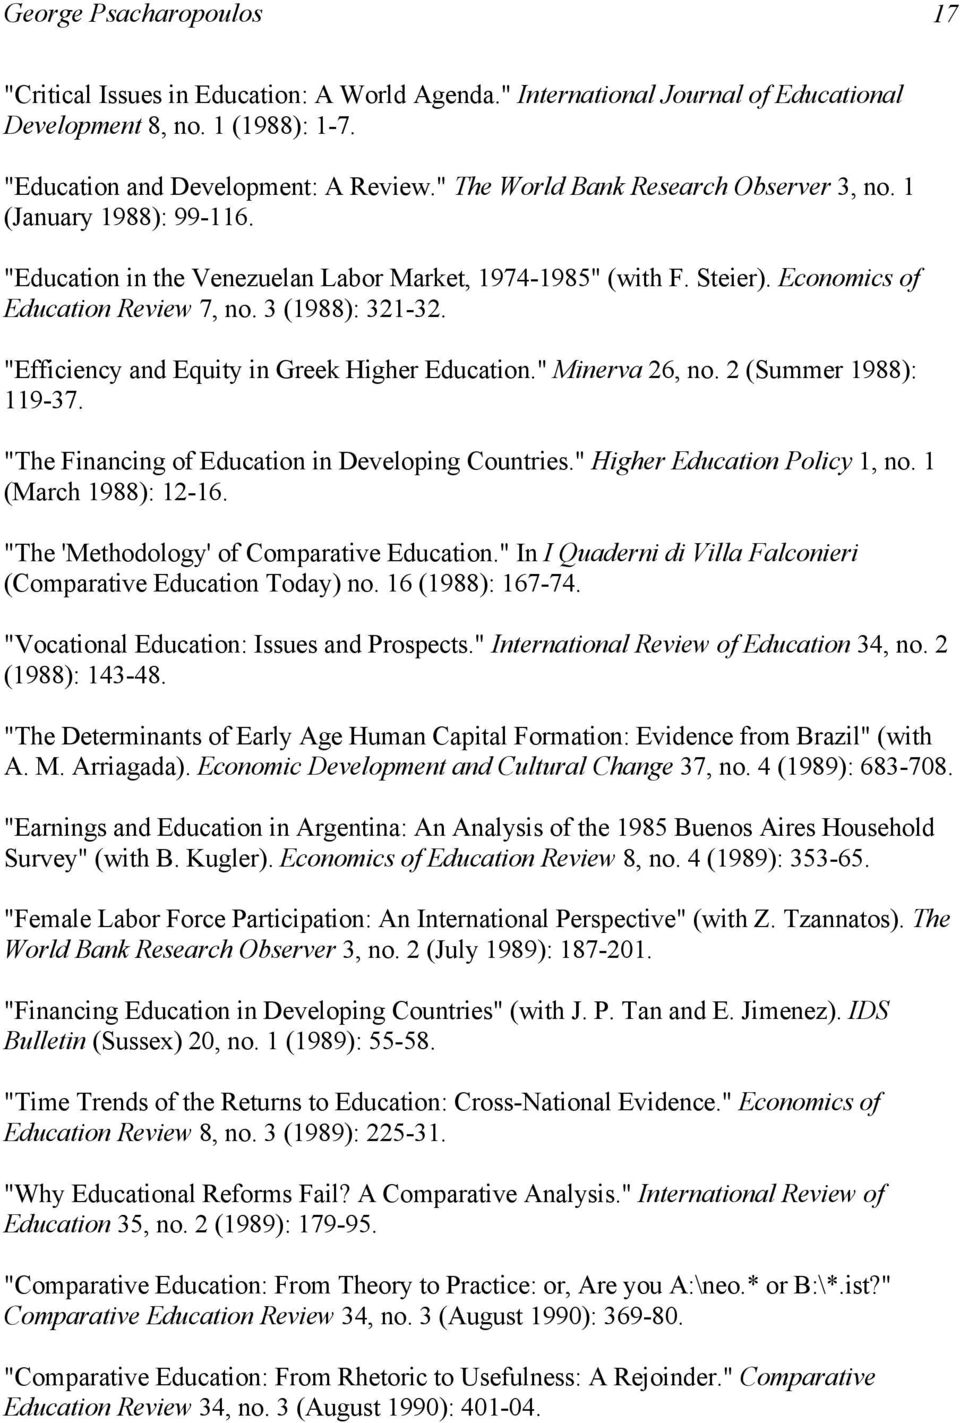 """Efficiency and Equity in Greek Higher Education."" Minerva 26, no. 2 (Summer 1988): 119-37. ""The Financing of Education in Developing Countries."" Higher Education Policy 1, no. 1 (March 1988): 12-16."